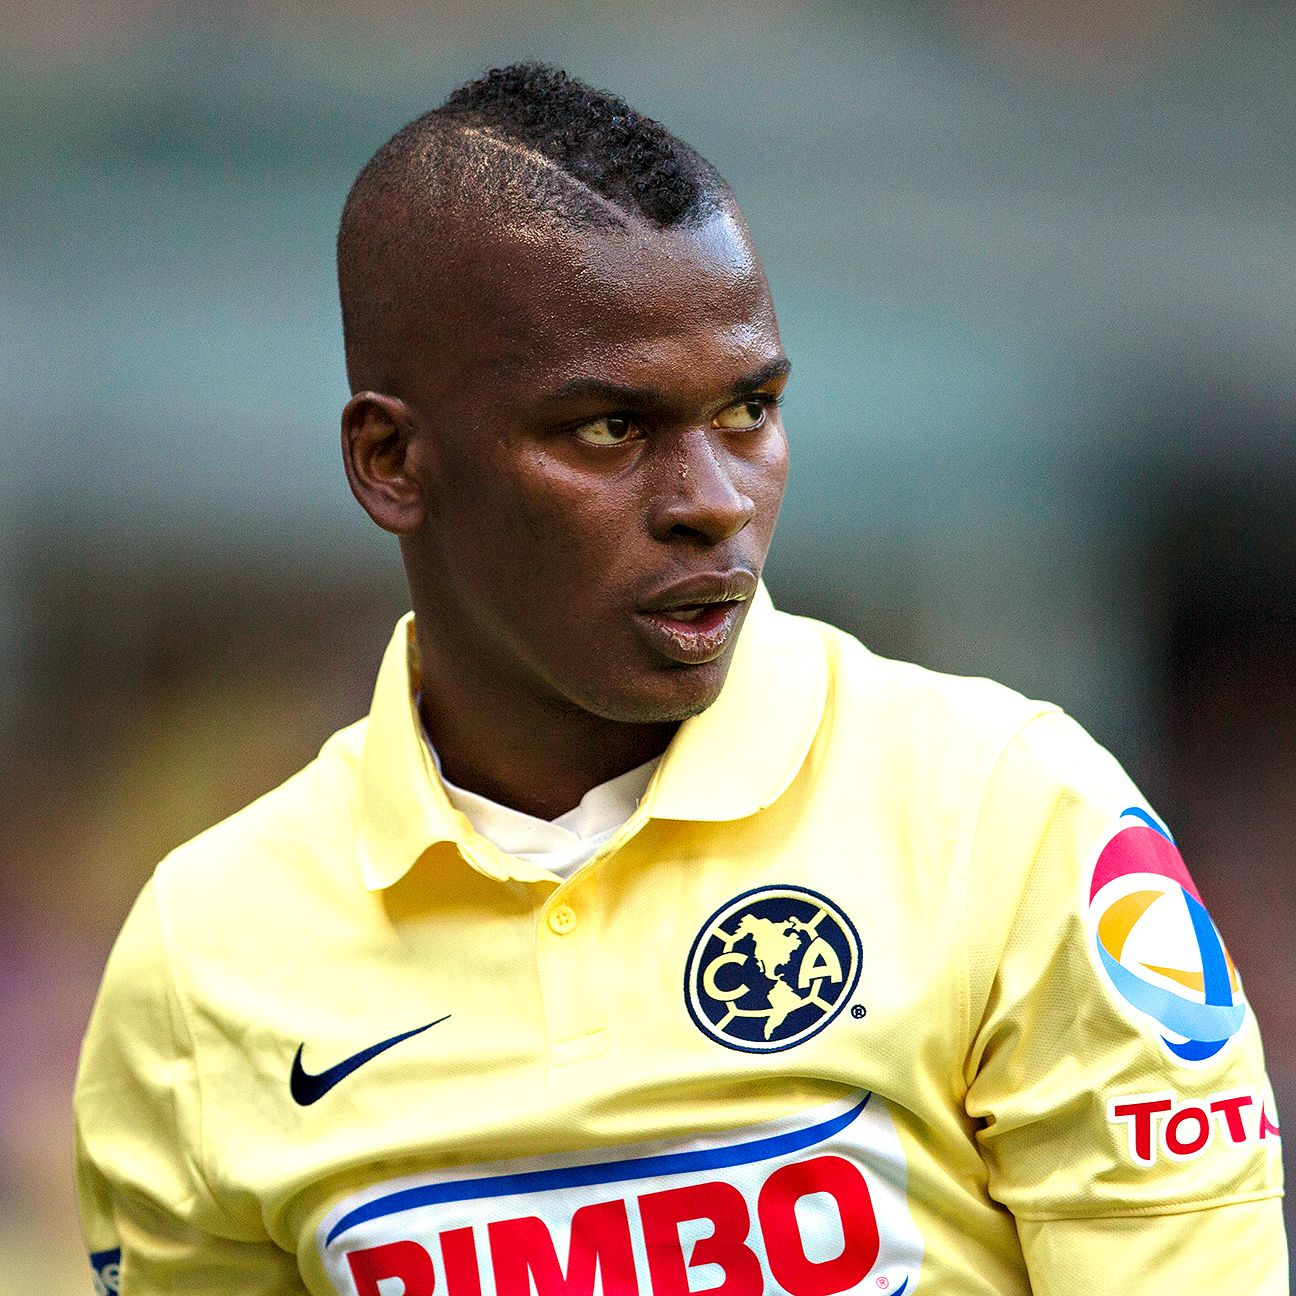 Darwin Quintero's pace gives Club America another dimension in attack.